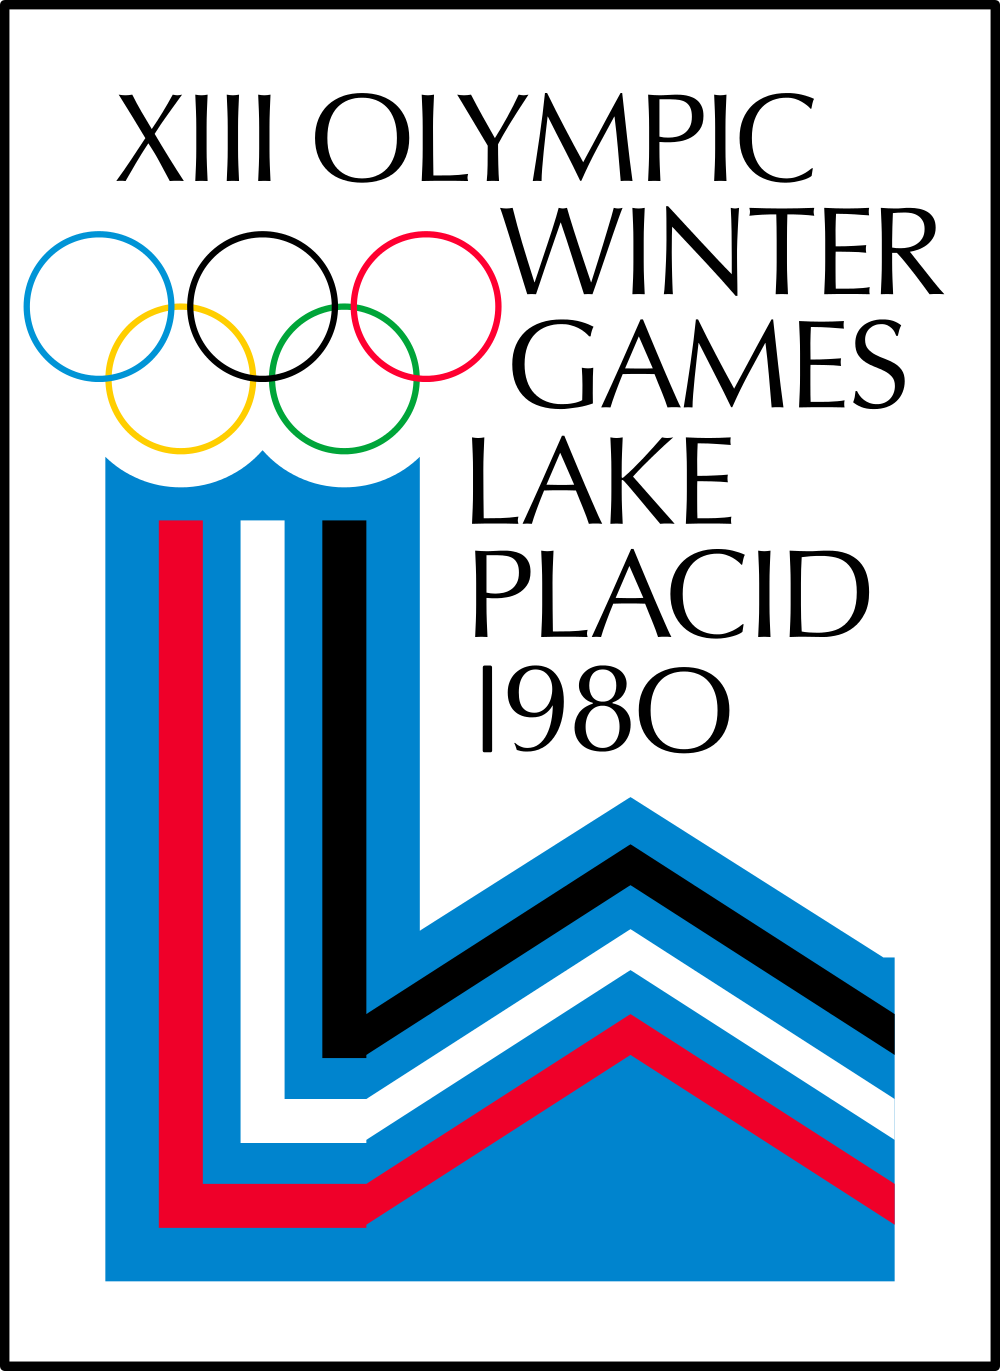 1980 Winter Olympics - Lake Placid, New York, United States